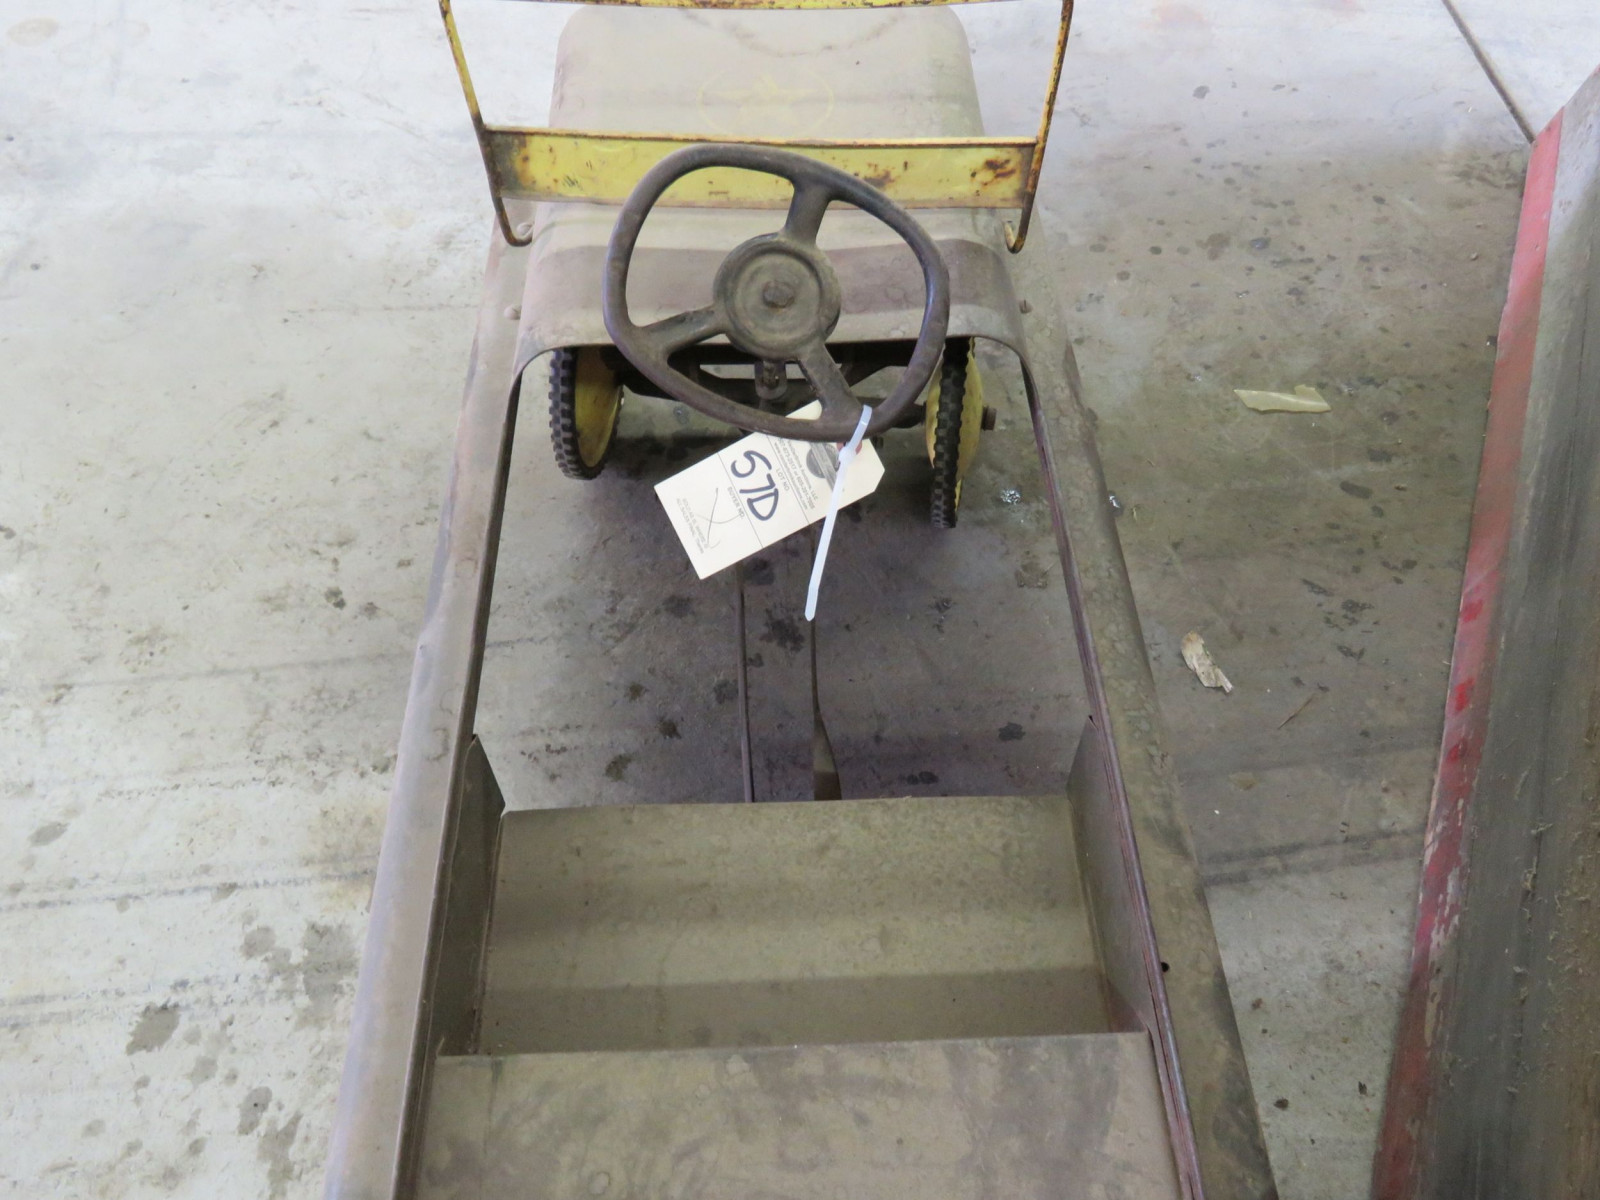 Vintage Garton Military Jeep Pedal Car for restore - Image 5